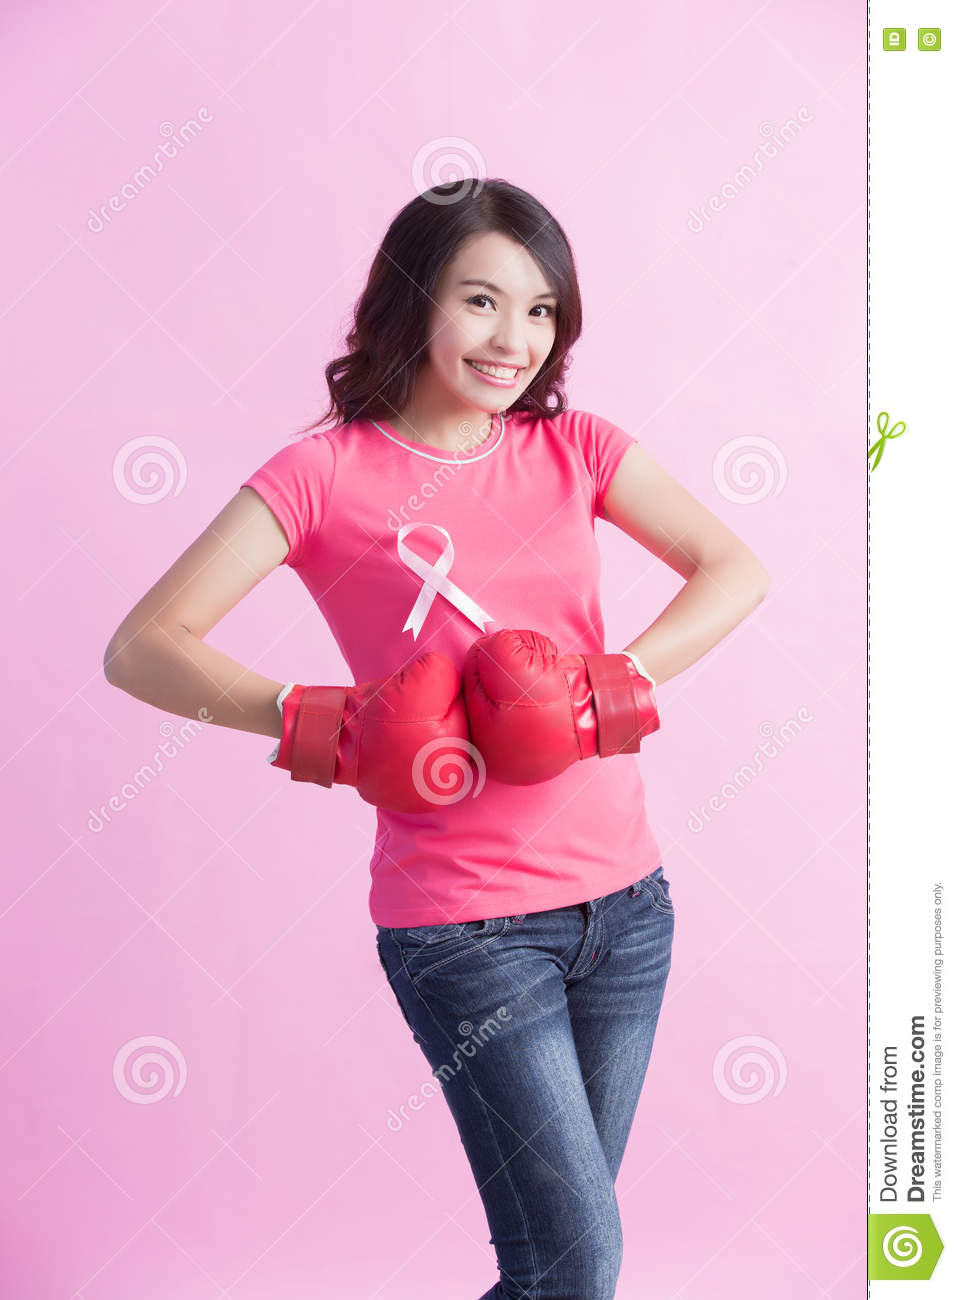 how to hold hands boxing